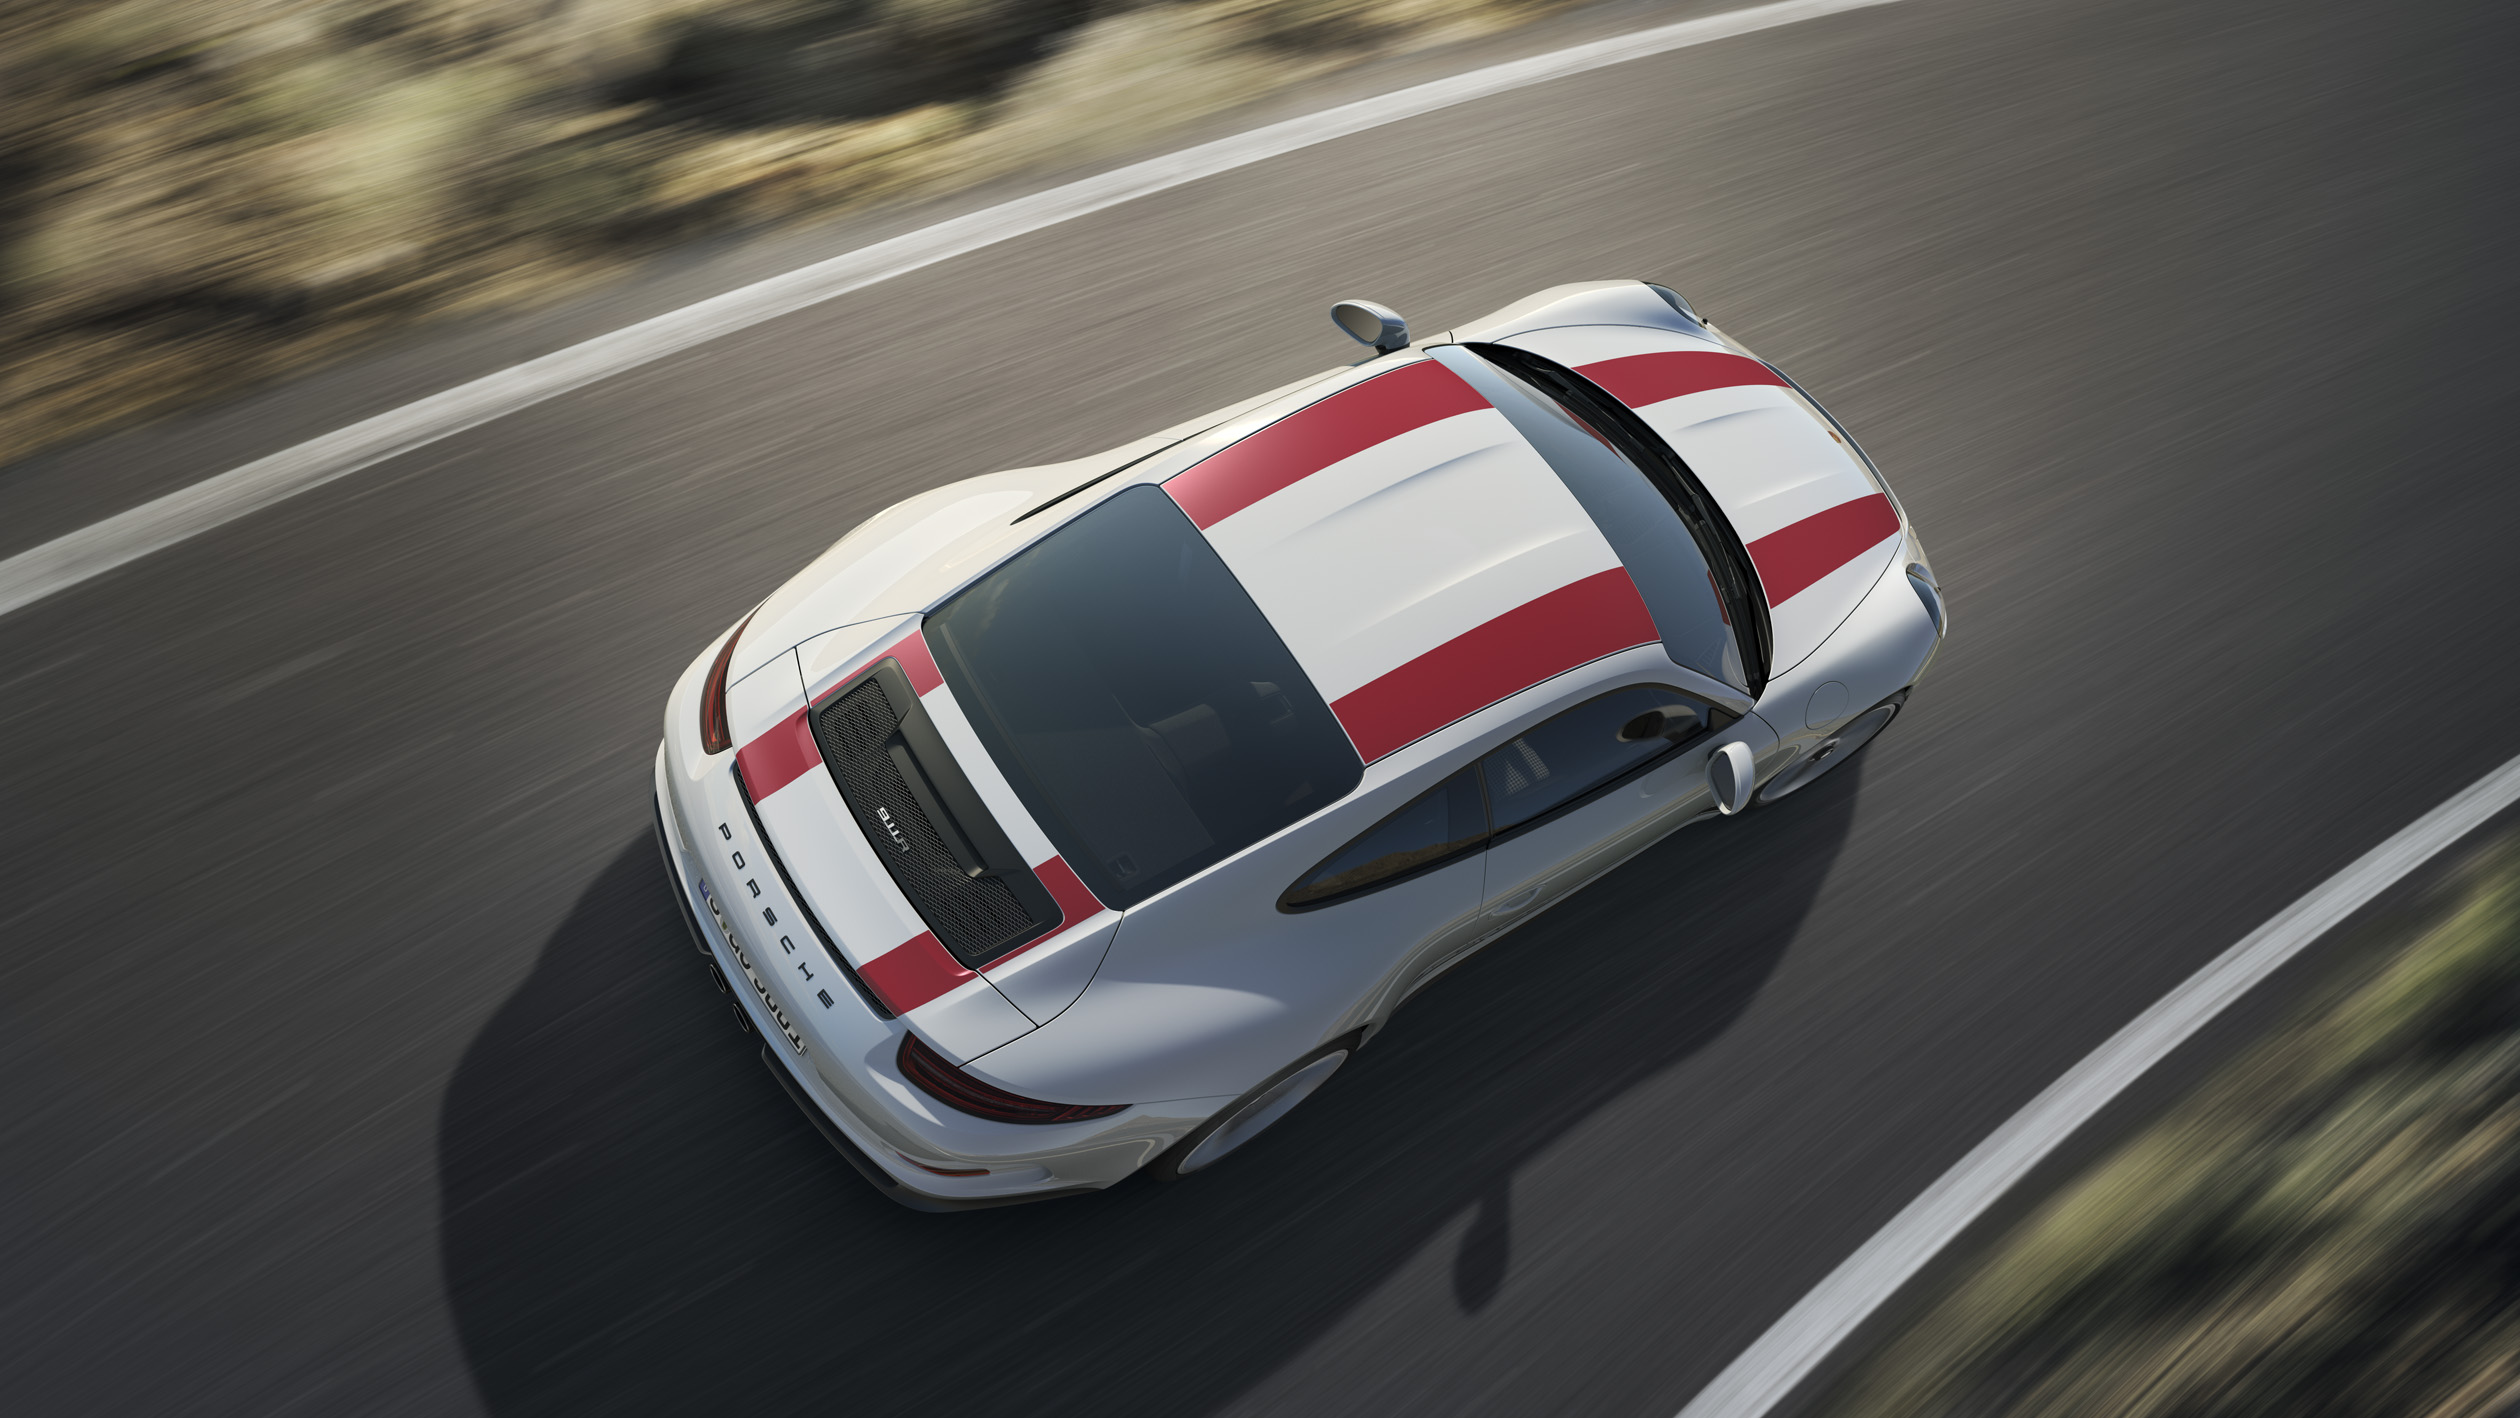 Top 5 Things You Need to Know About the Porsche 911 R